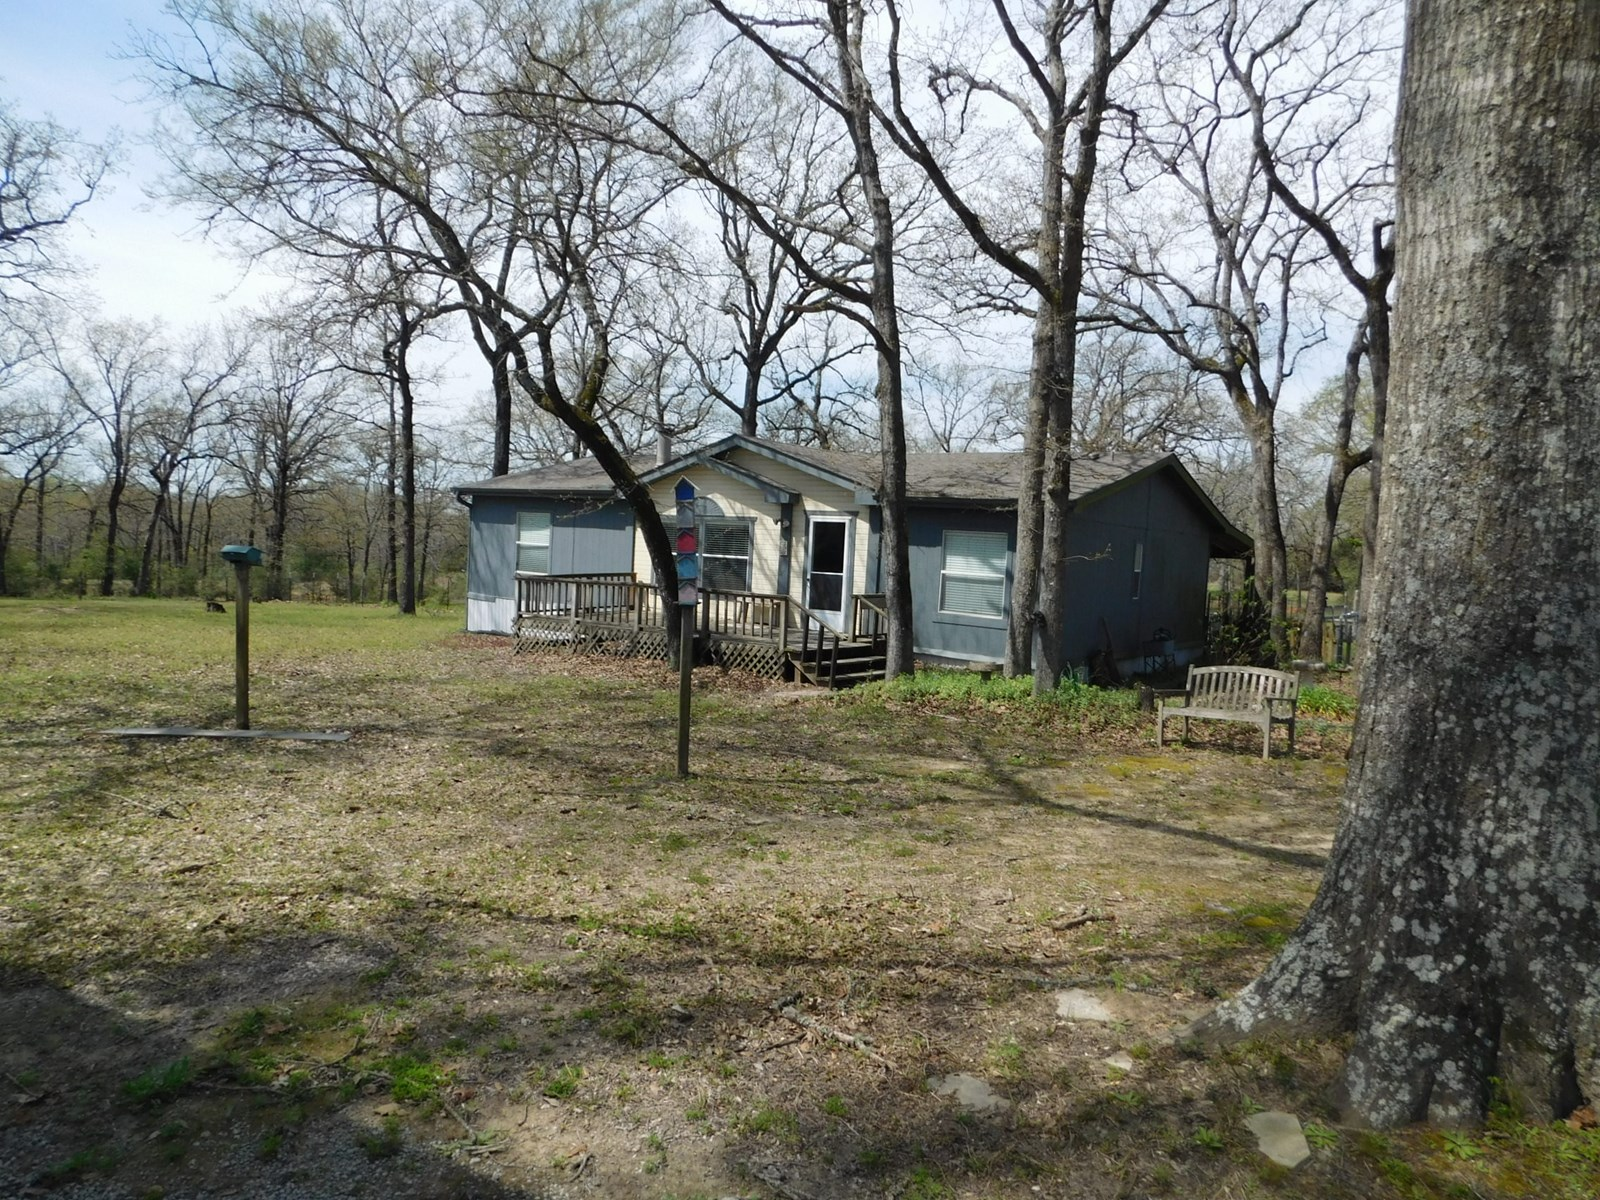 House and Land For Sale - Buffalo, TX - Leon County, Texas